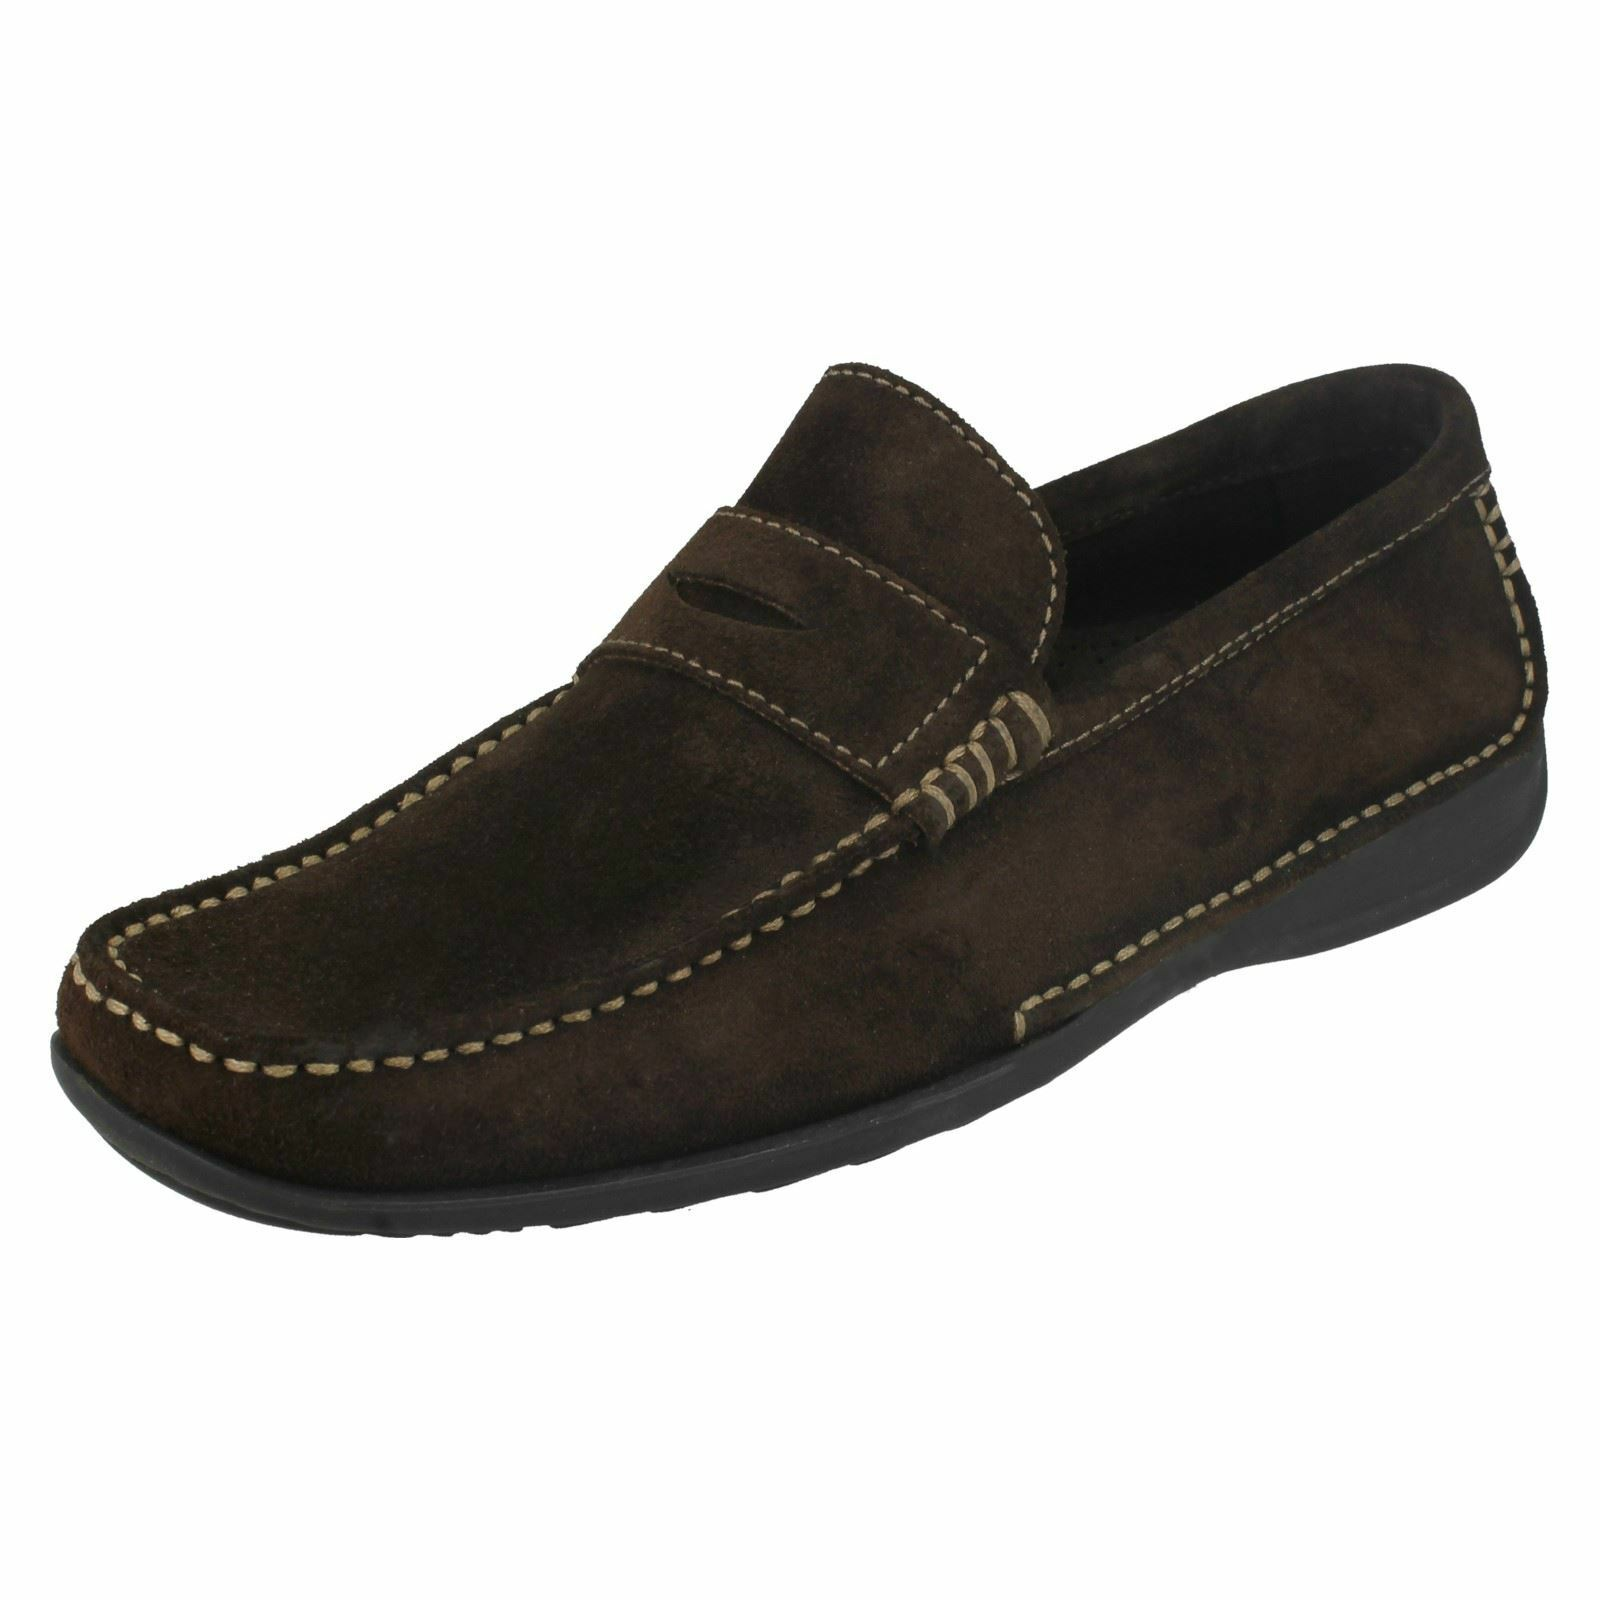 Loake Pour Homme Slip On Mocassin Chaussures-CORTINA